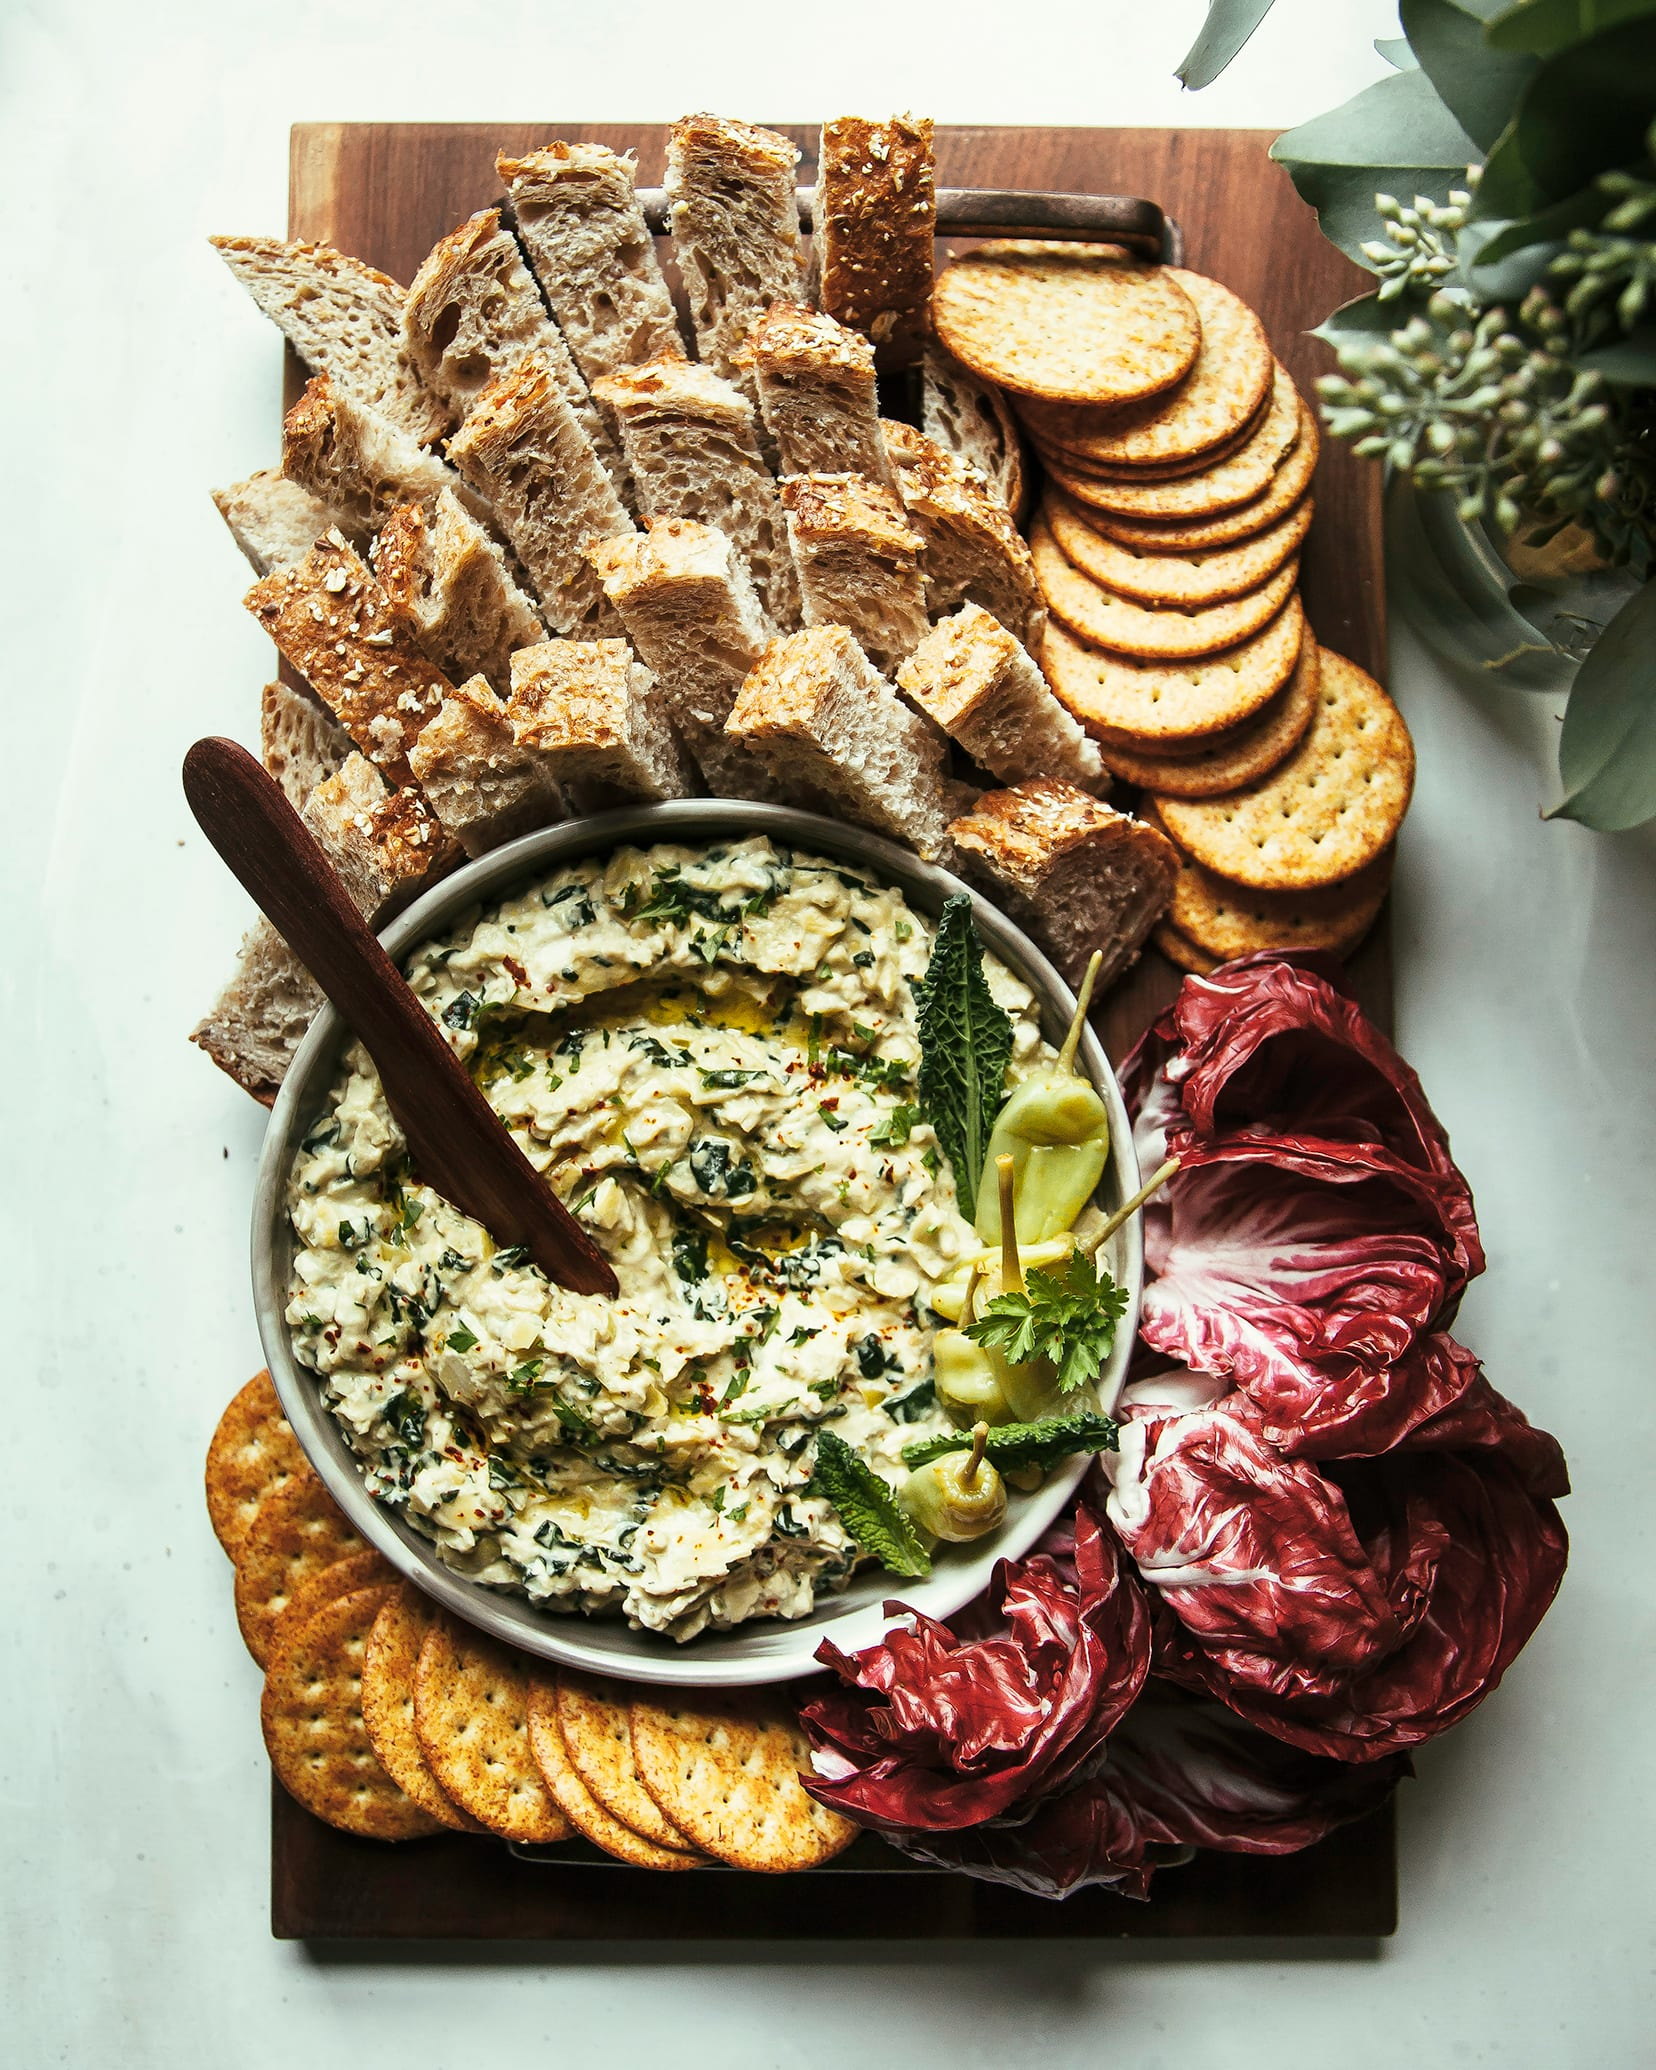 SPICY PEPPERONCINI, ARTICHOKE & KALE DIP (VEGAN)